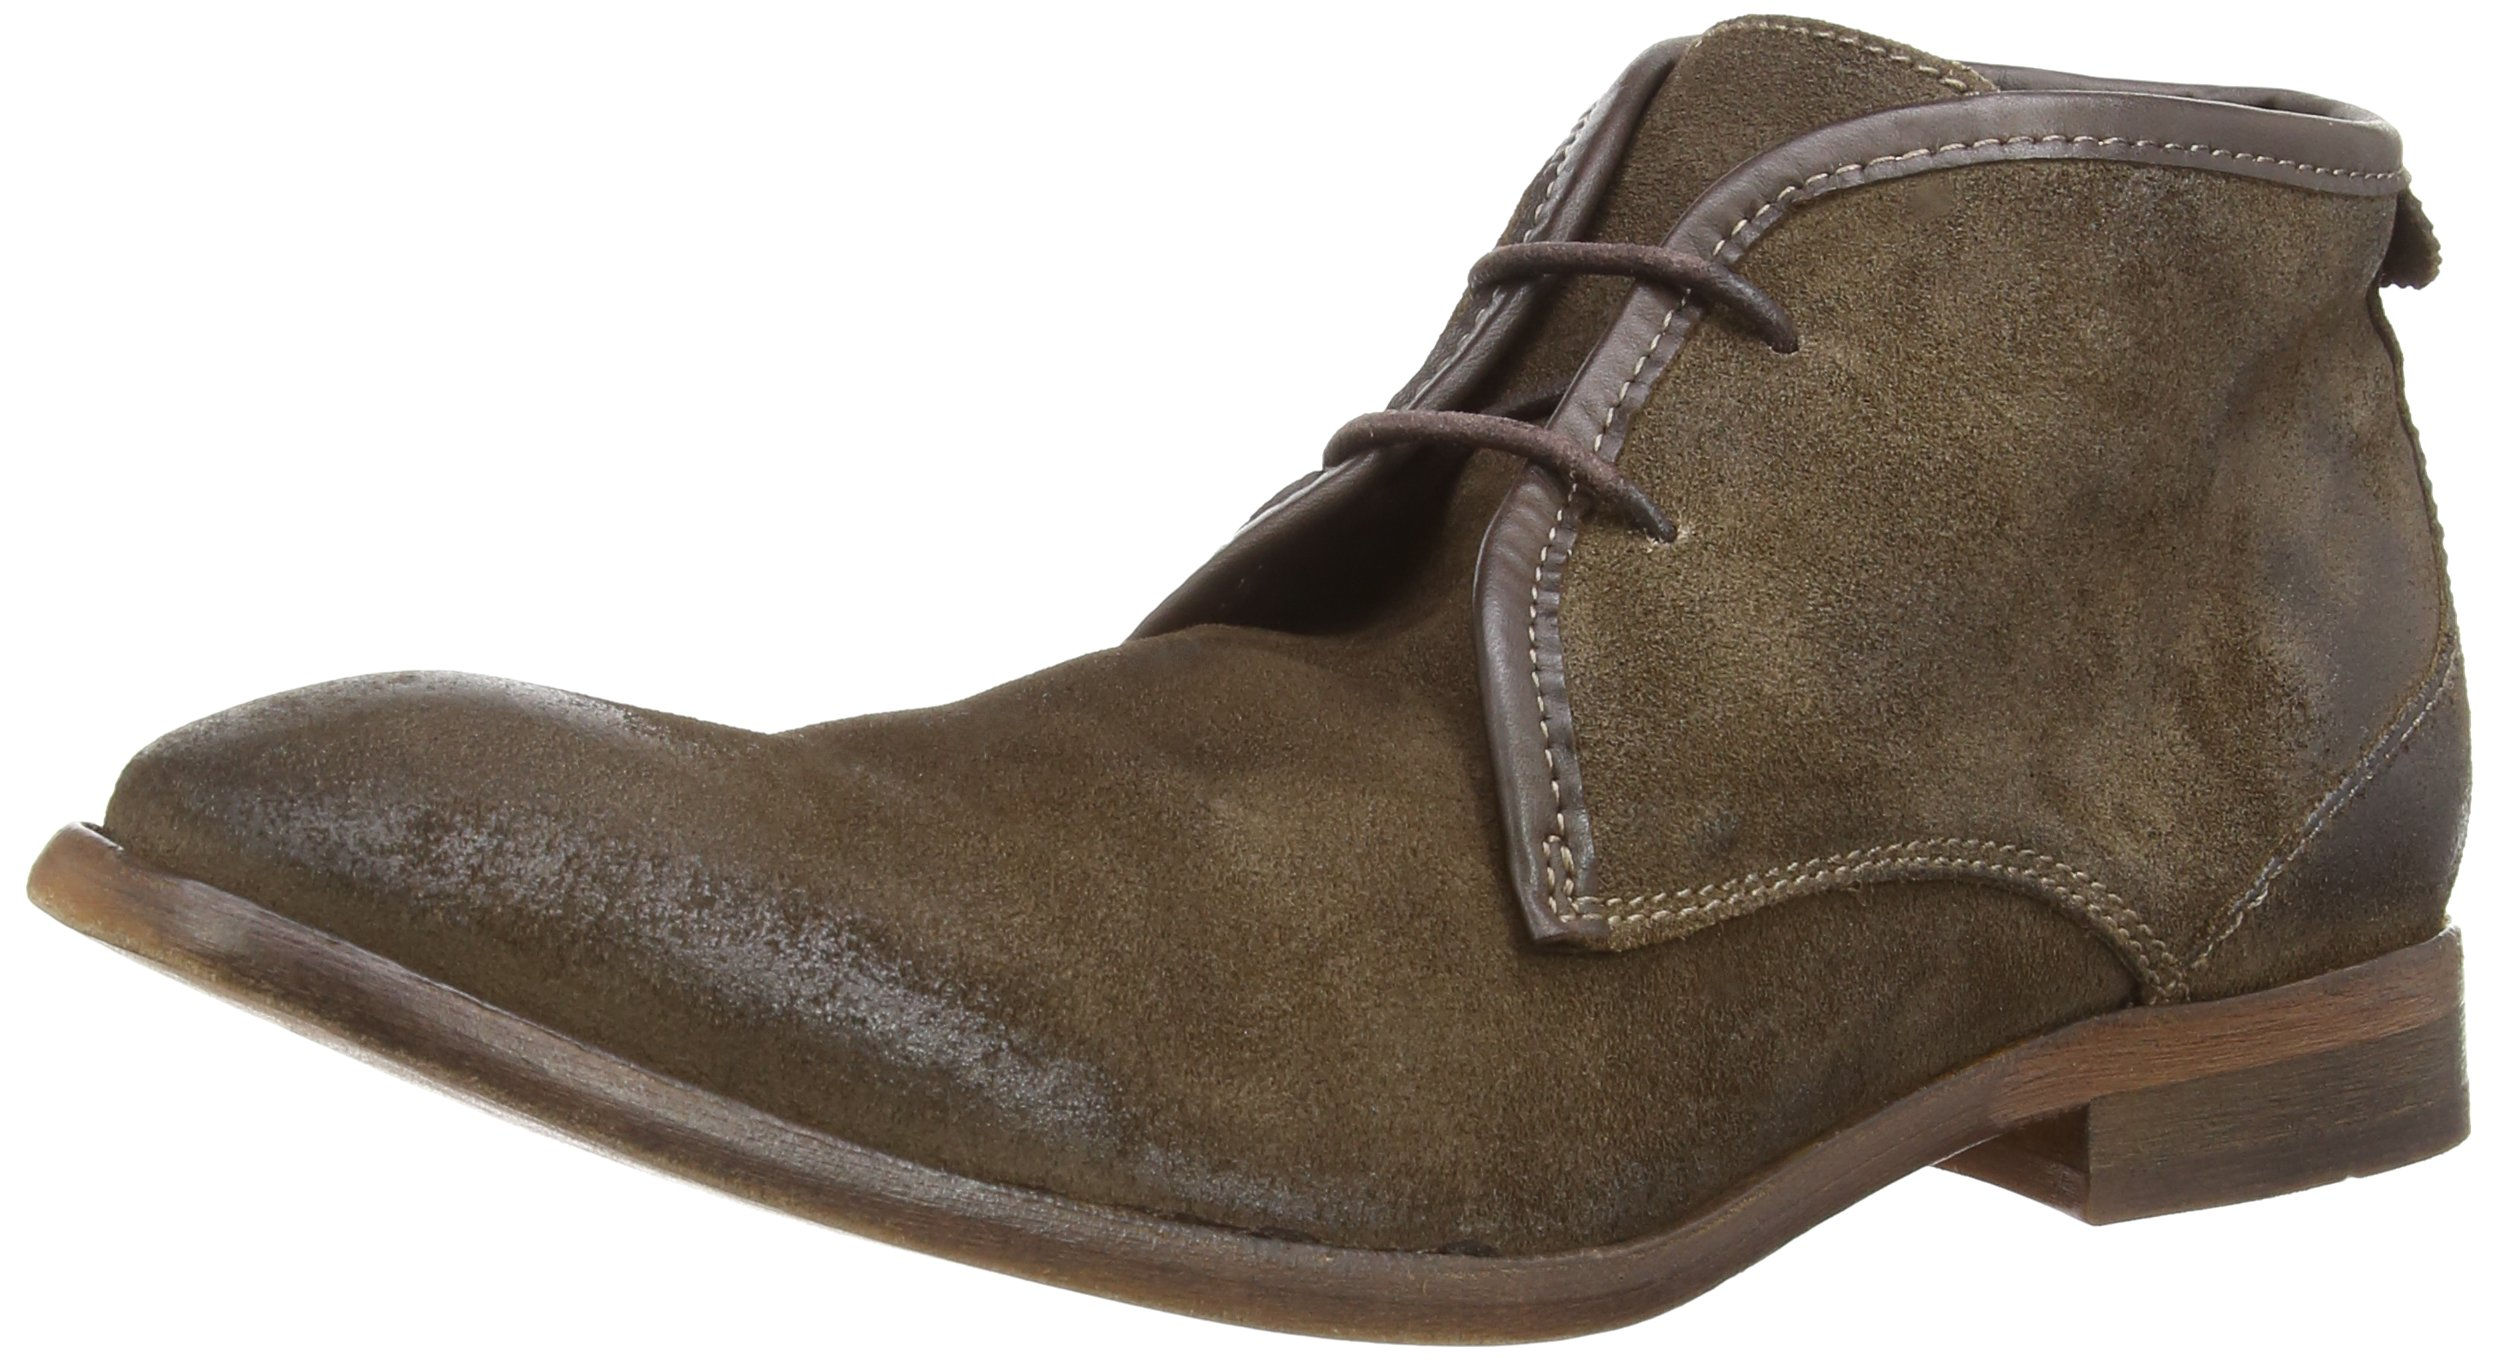 Suede Taupe Cruise H BottinesBeigetaupe45 Hudson By A3jS54RqcL